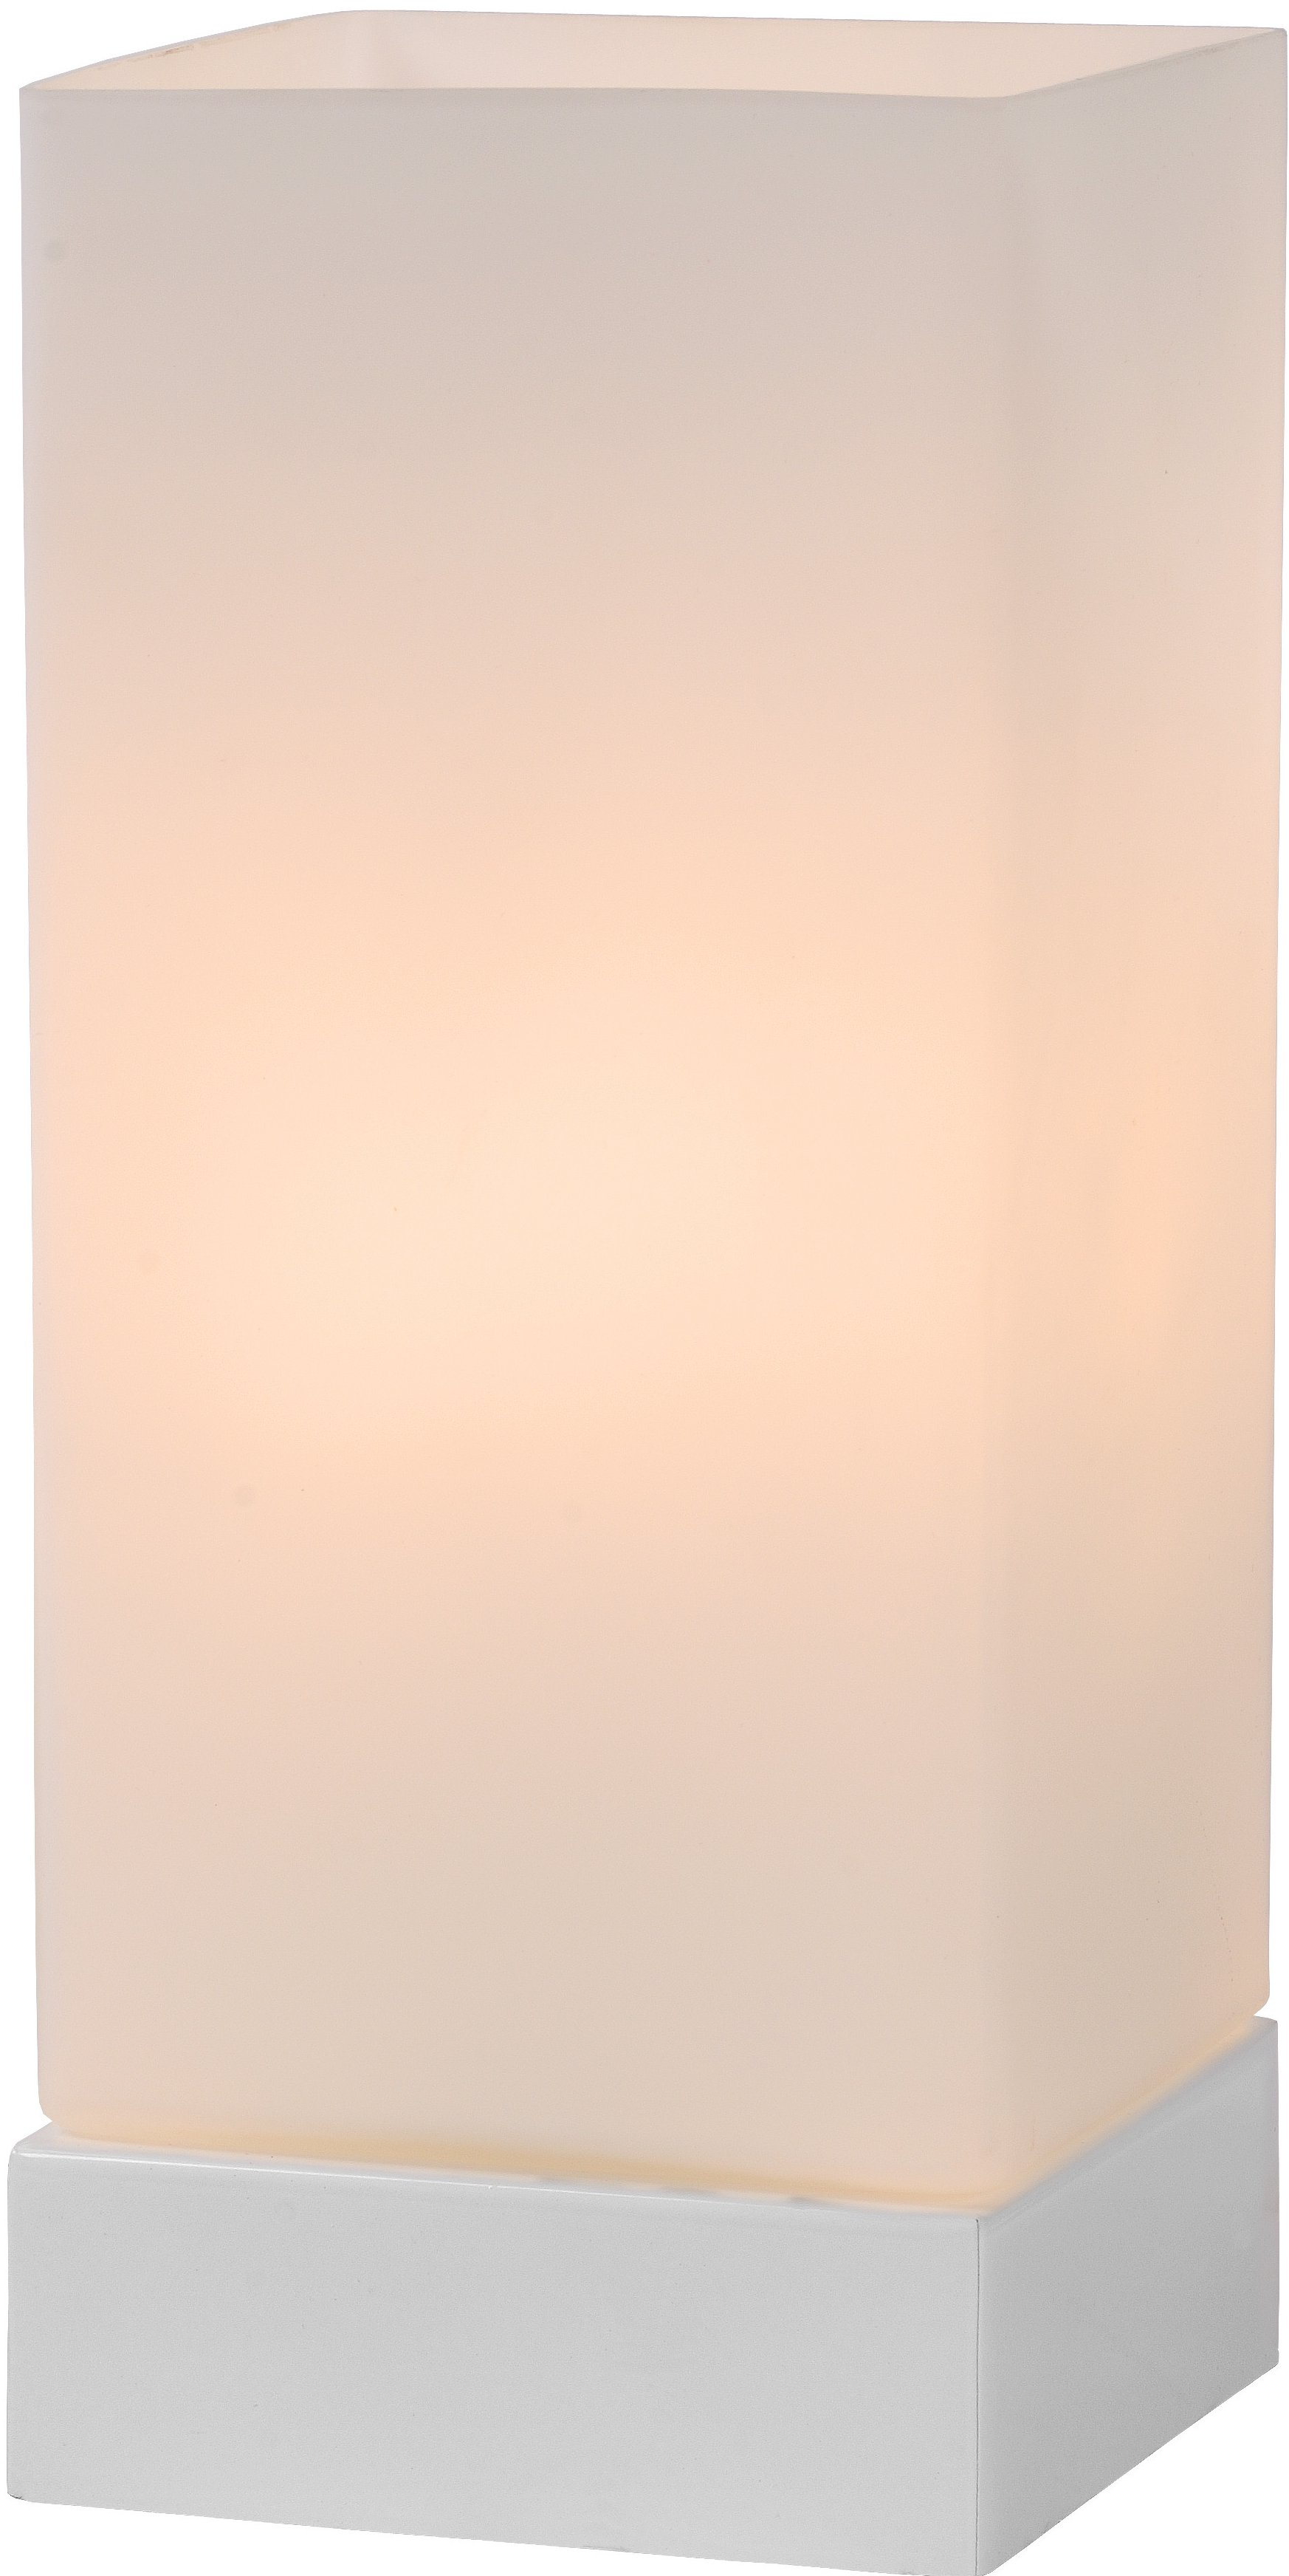 Lucide - COLOUR-TOUCH - Tafellamp - 71529/01